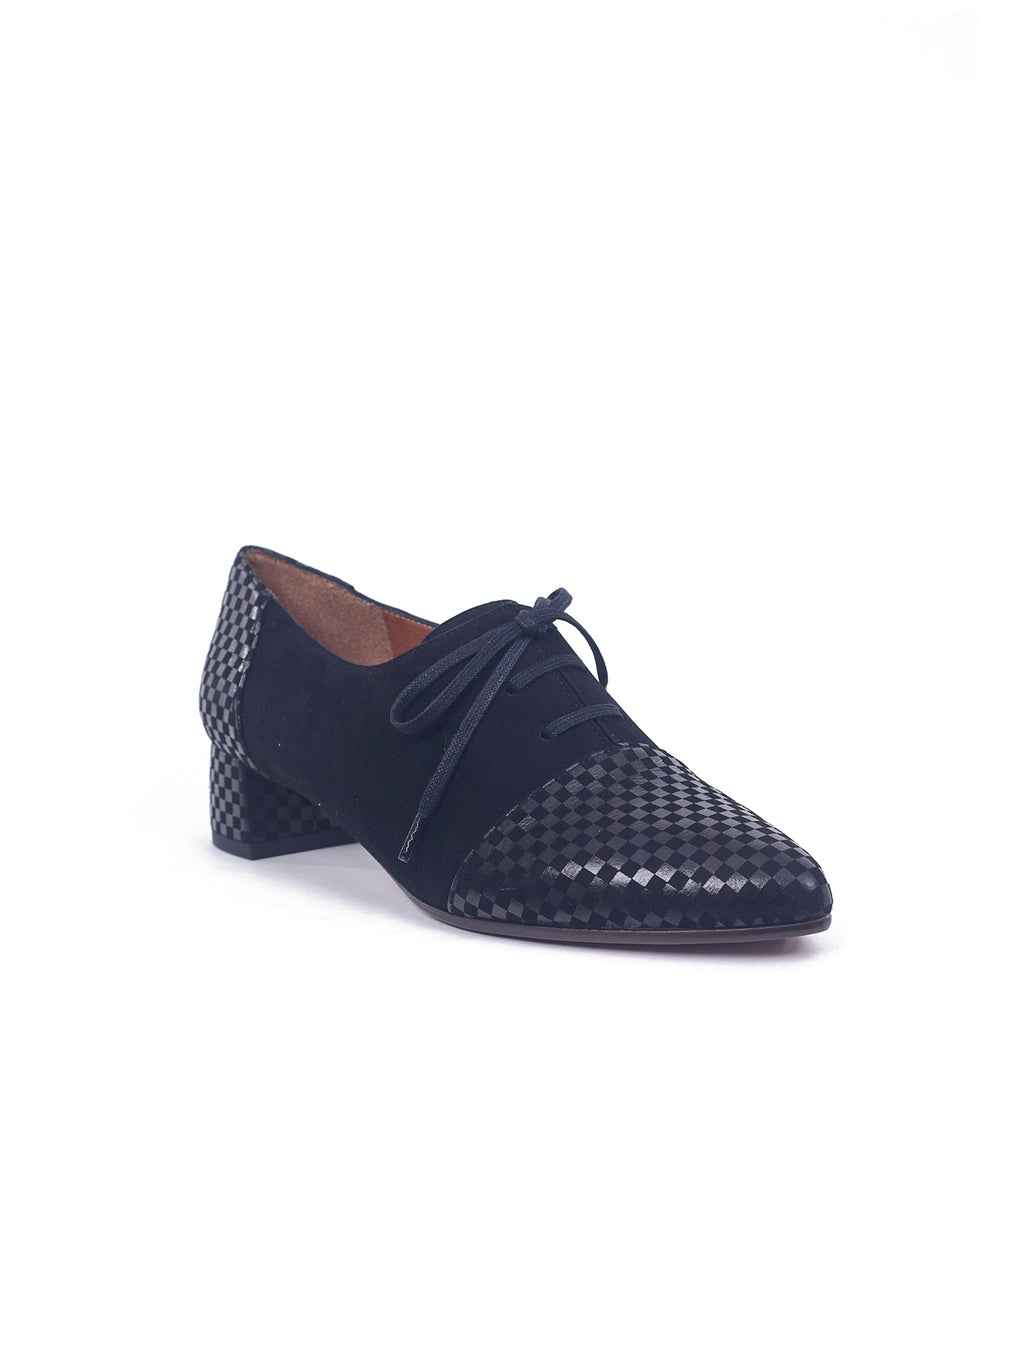 Chie Mihara Roly Pointed Oxfords, Black